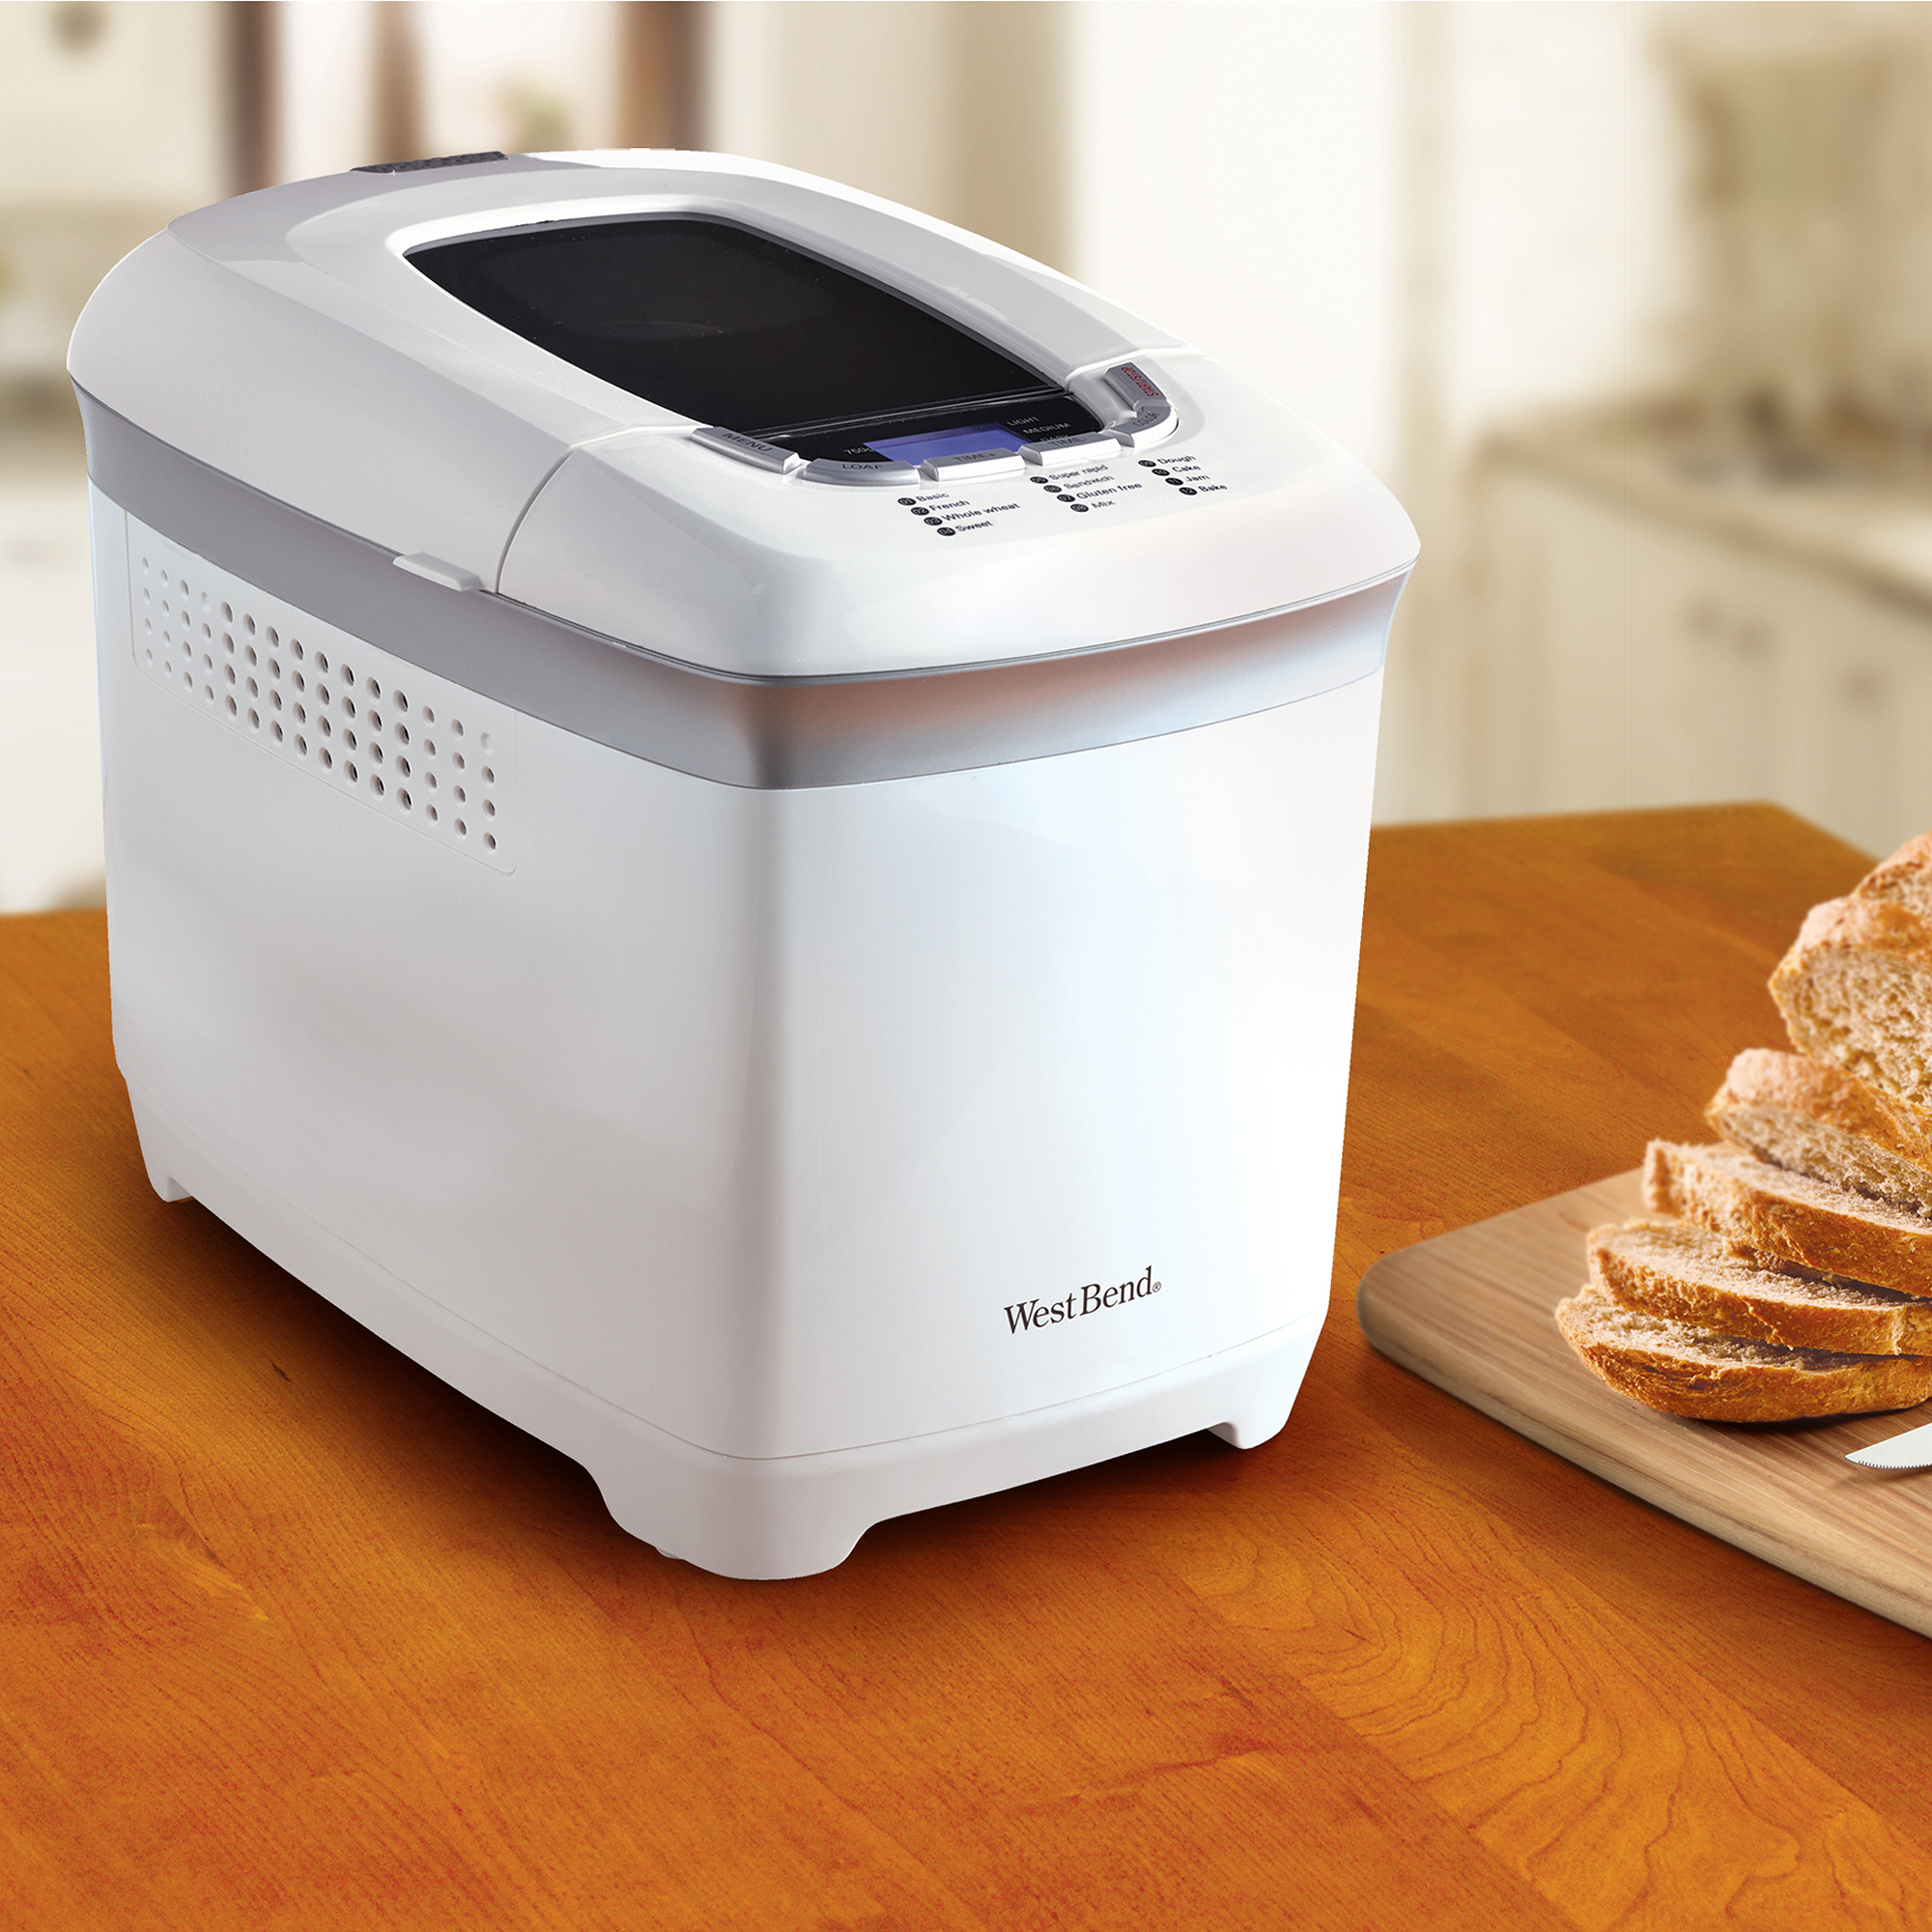 West Bend 2-lb Loaf Capacity Hi-Rise Breadmaker